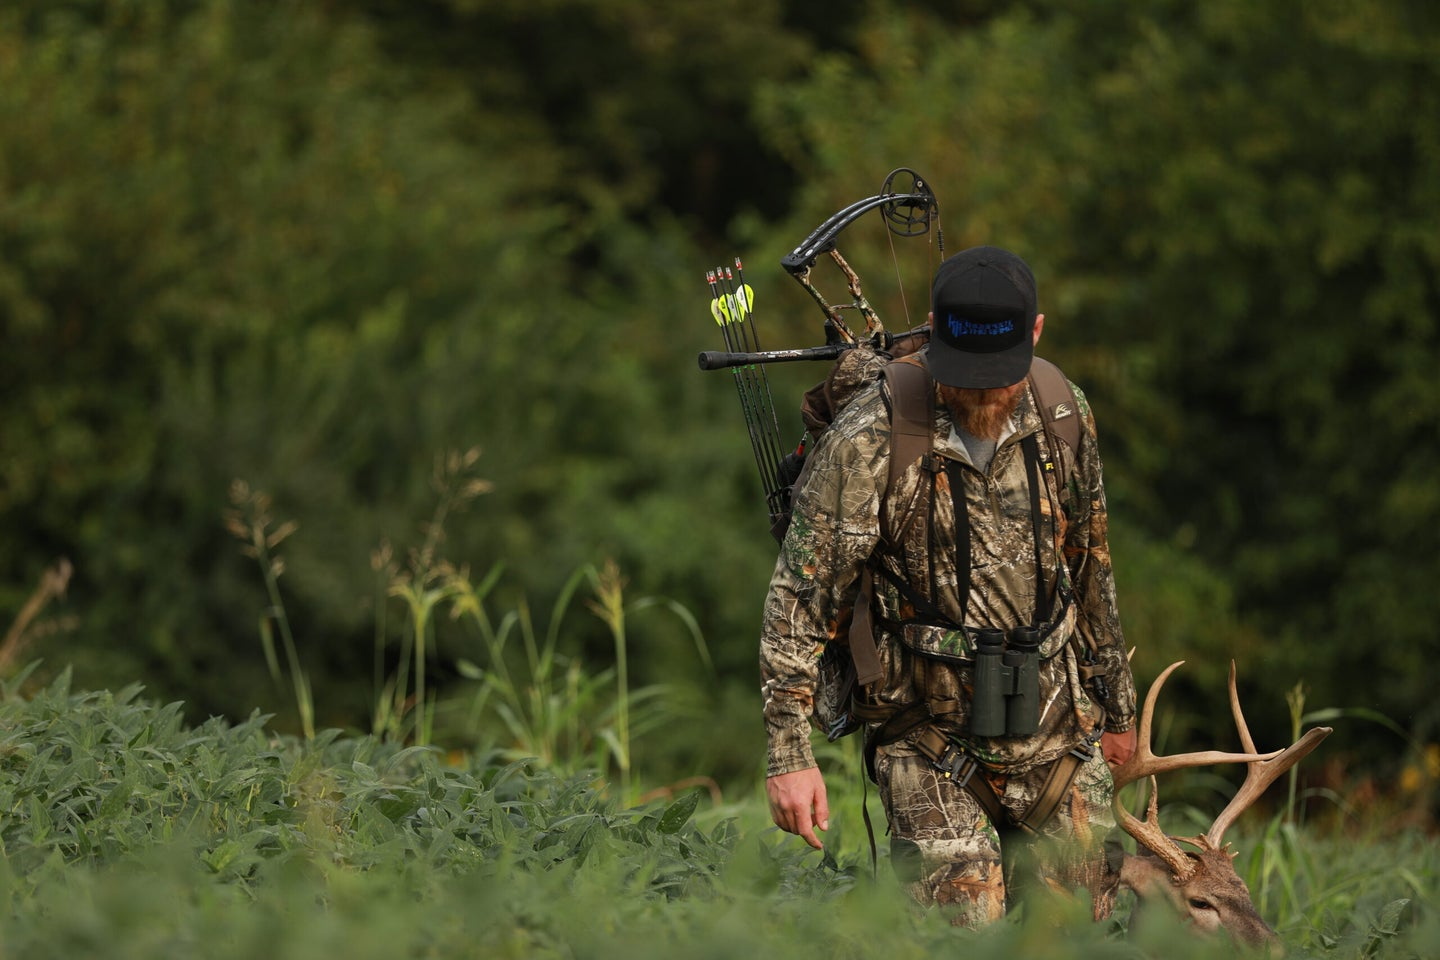 bowhunter with whitetail deer